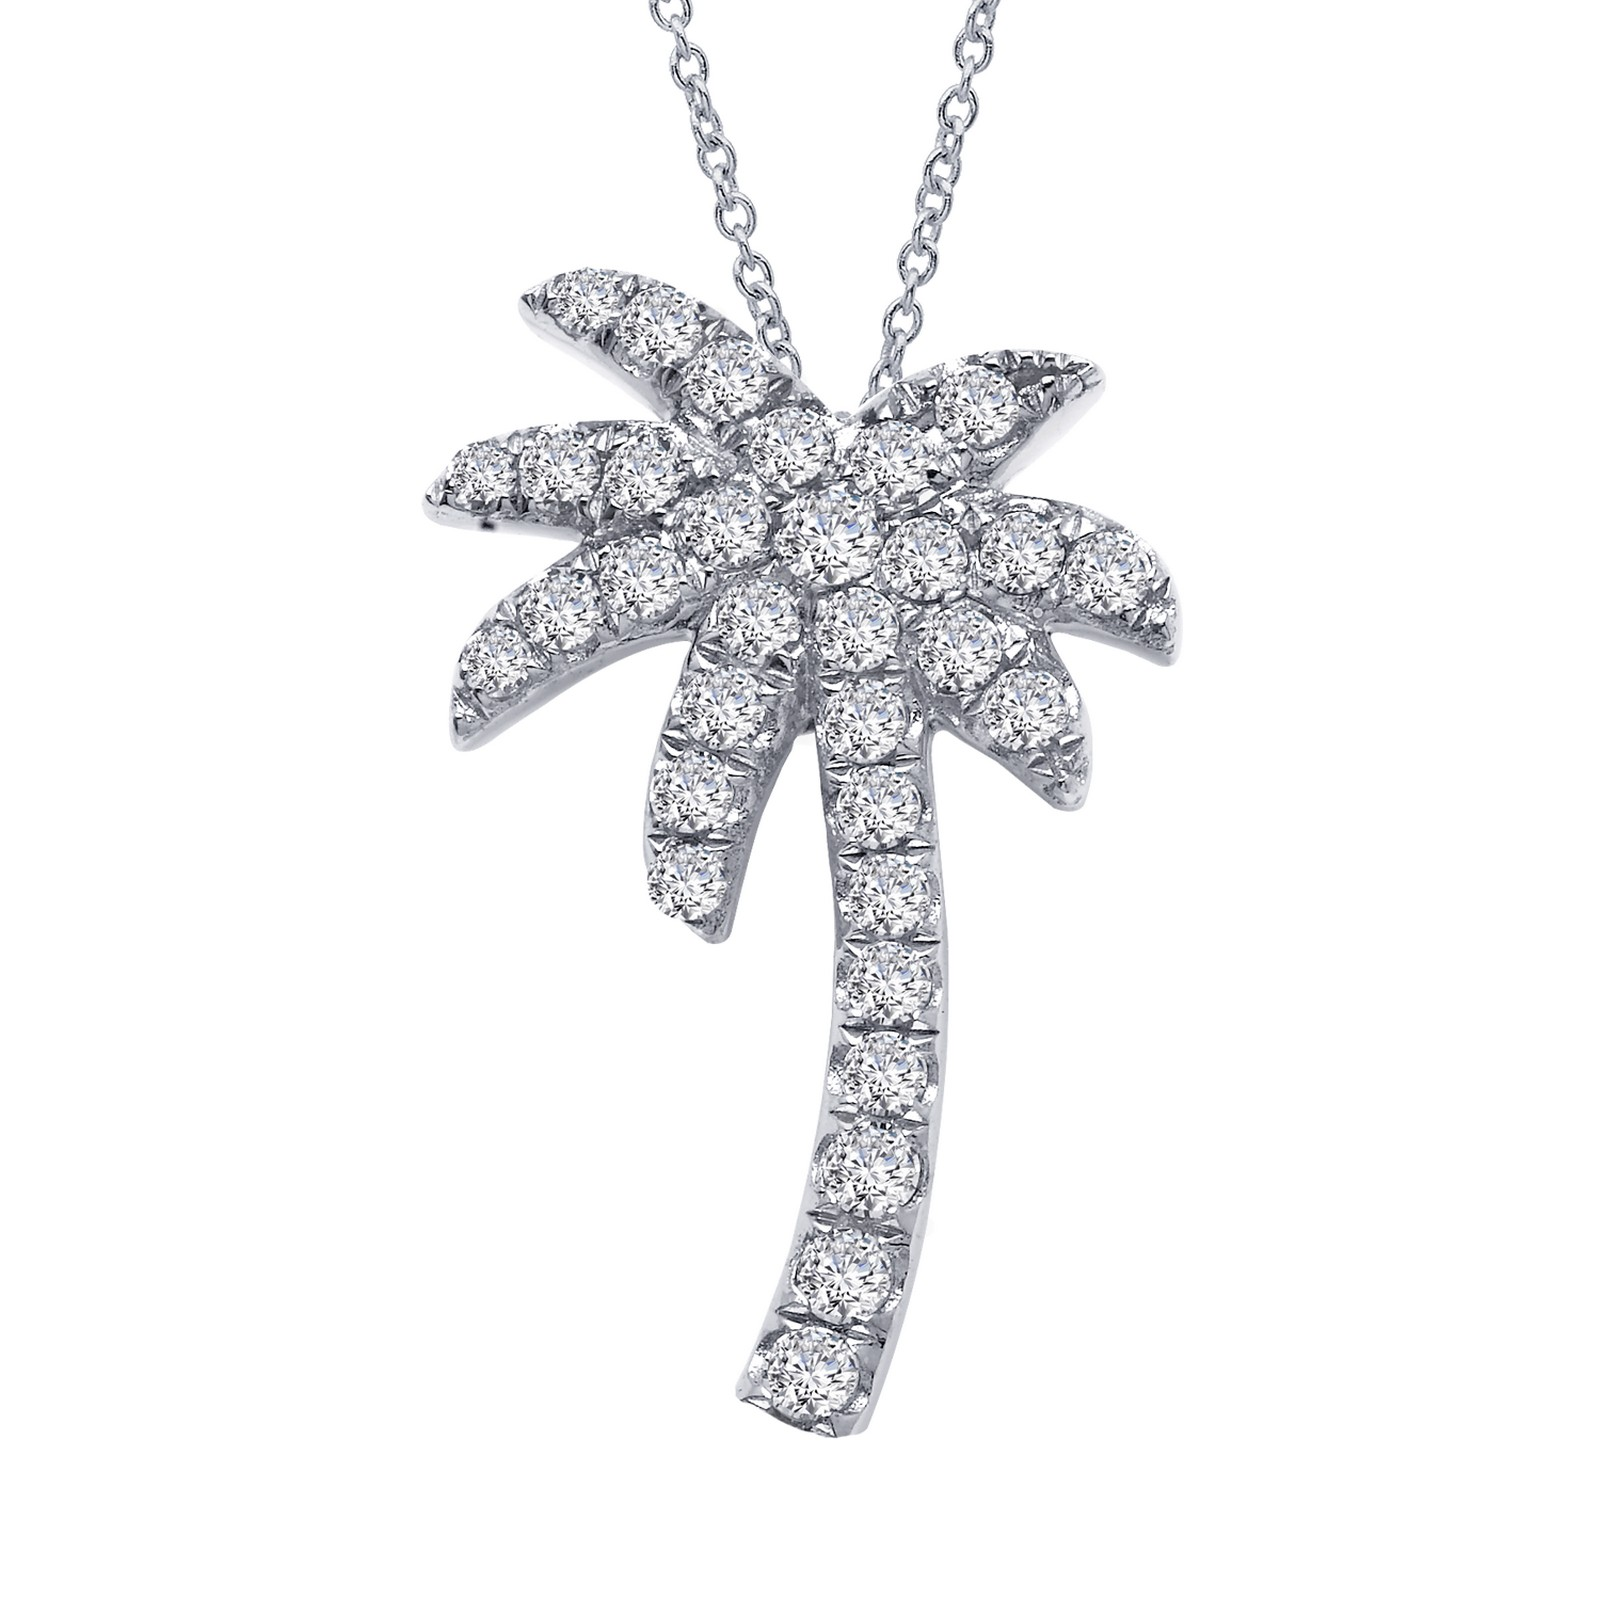 Nautical Simulated Diamond Platinum Necklace by Lafonn